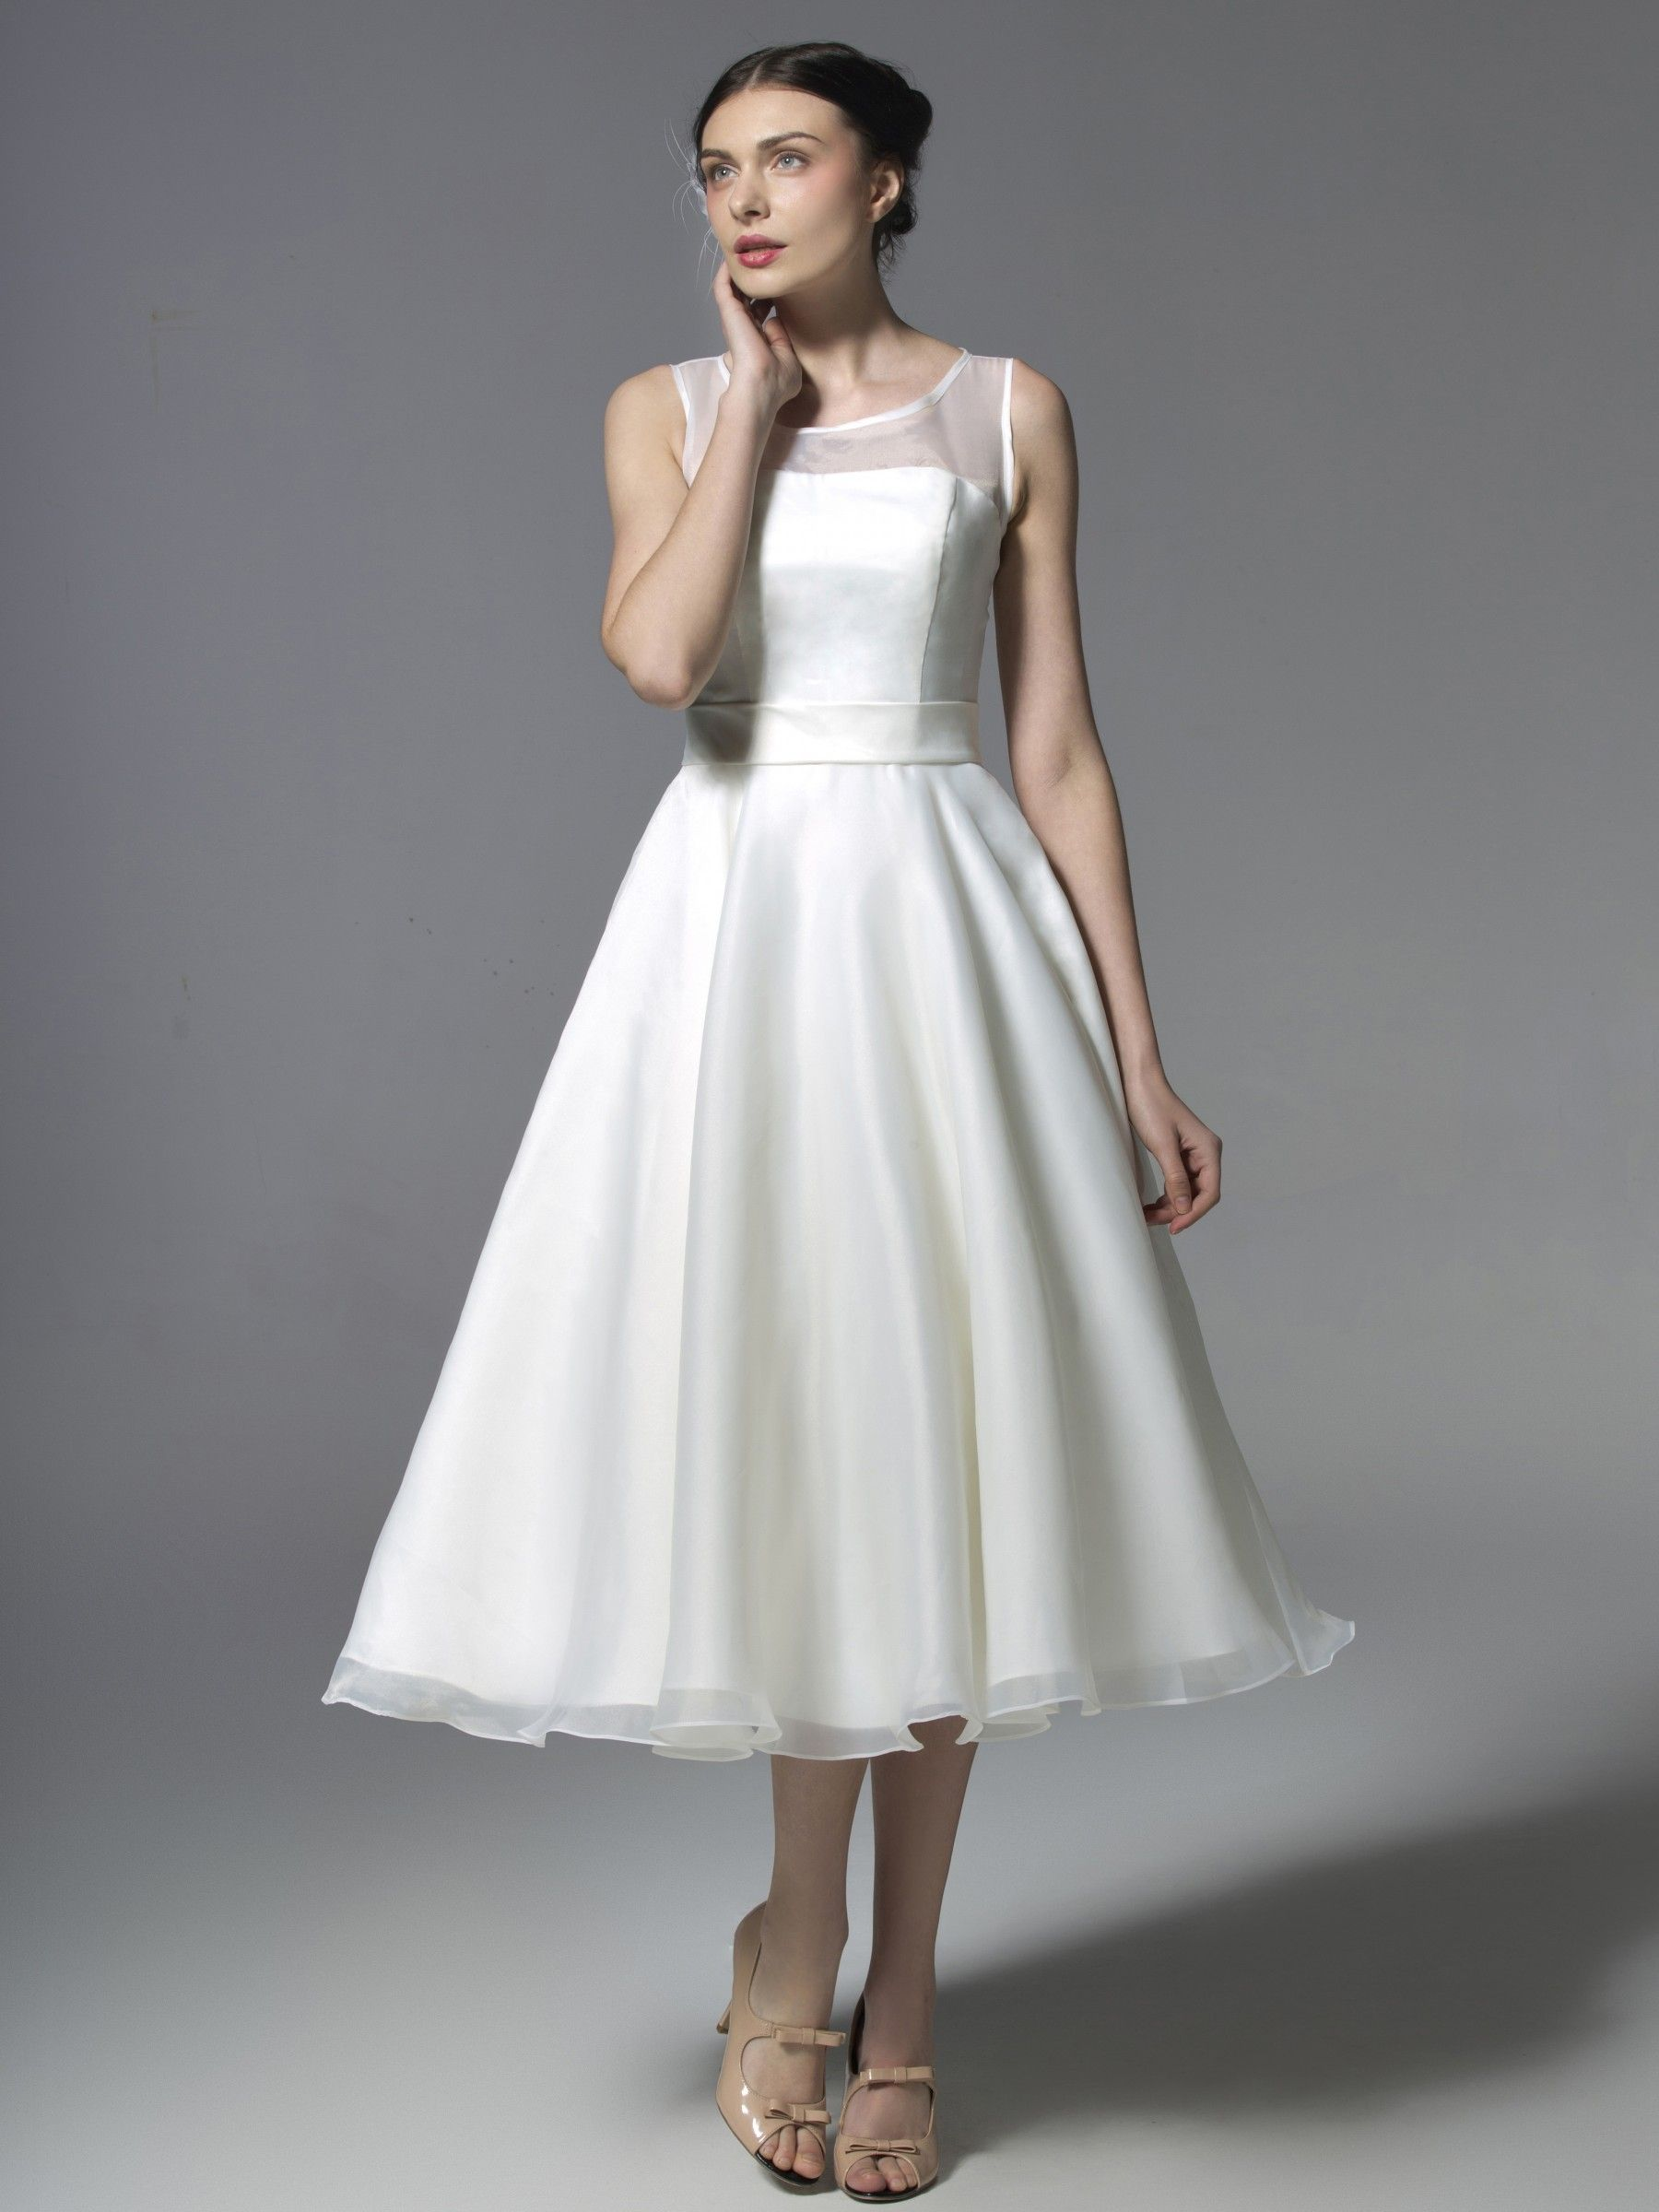 Illusion neckline tea length organdy gown plus and petite sizes